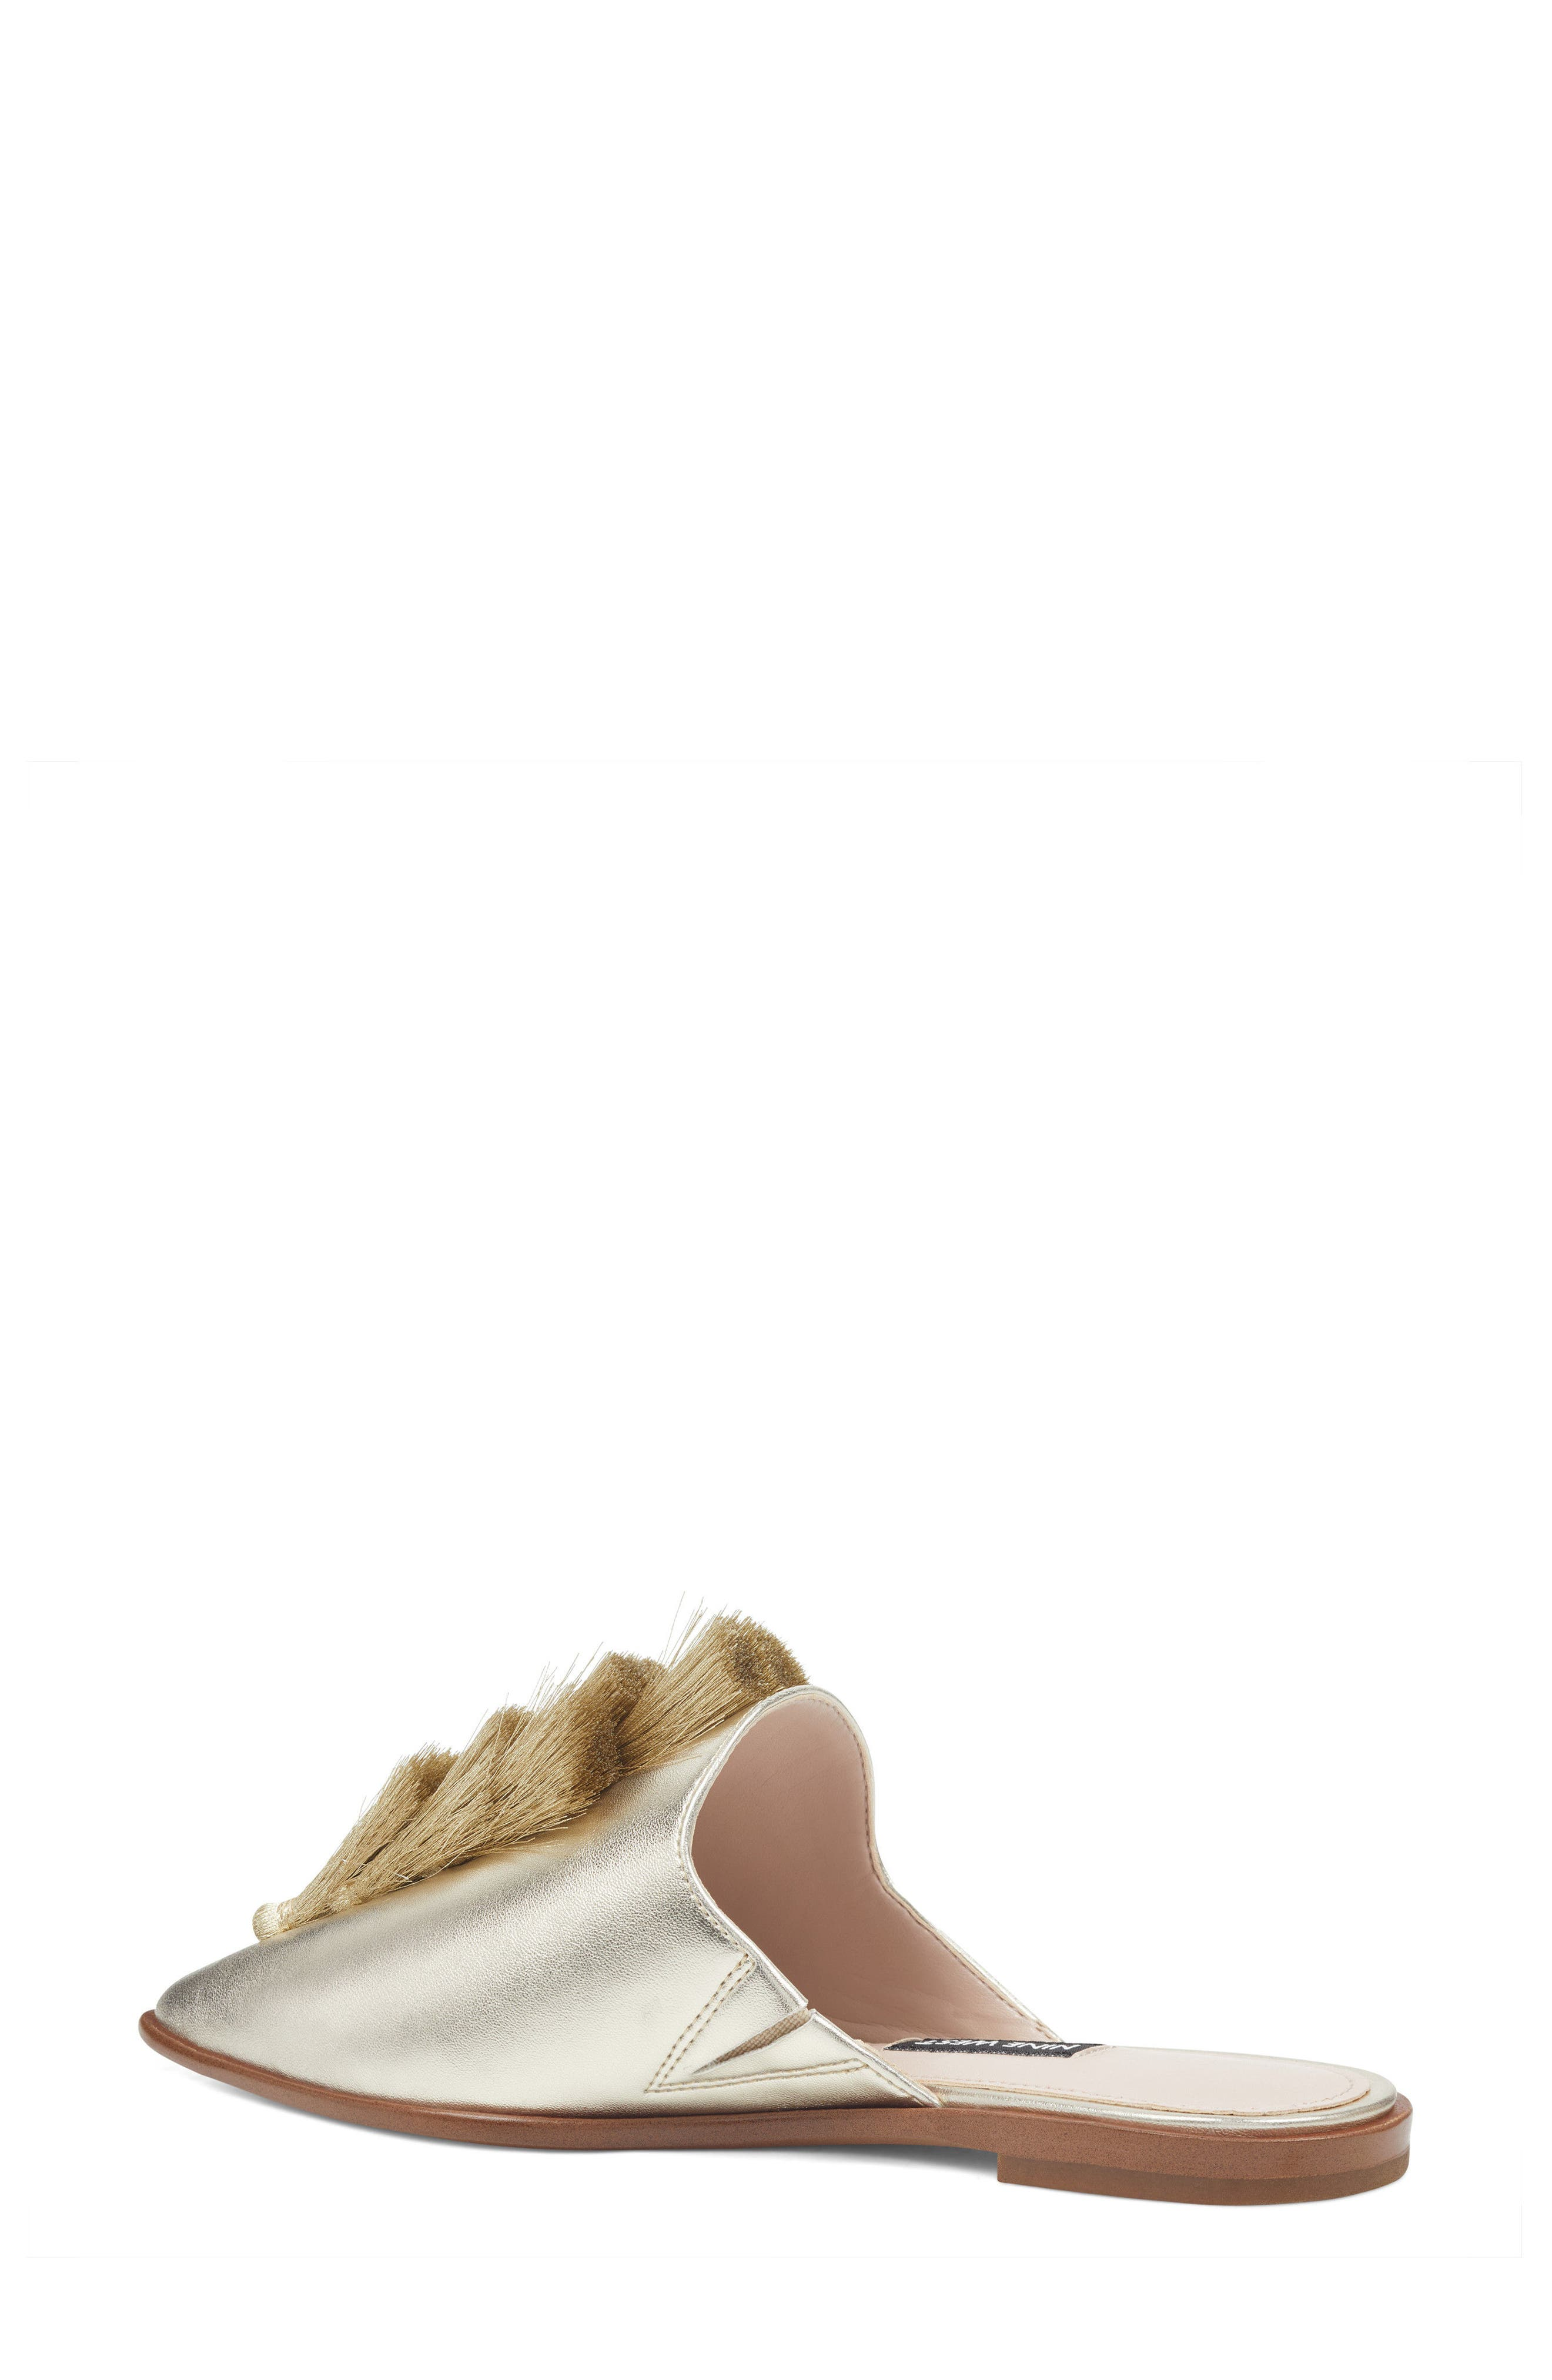 Ollial Fringed Loafer Mule,                             Alternate thumbnail 2, color,                             LIGHT GOLD LEATHER